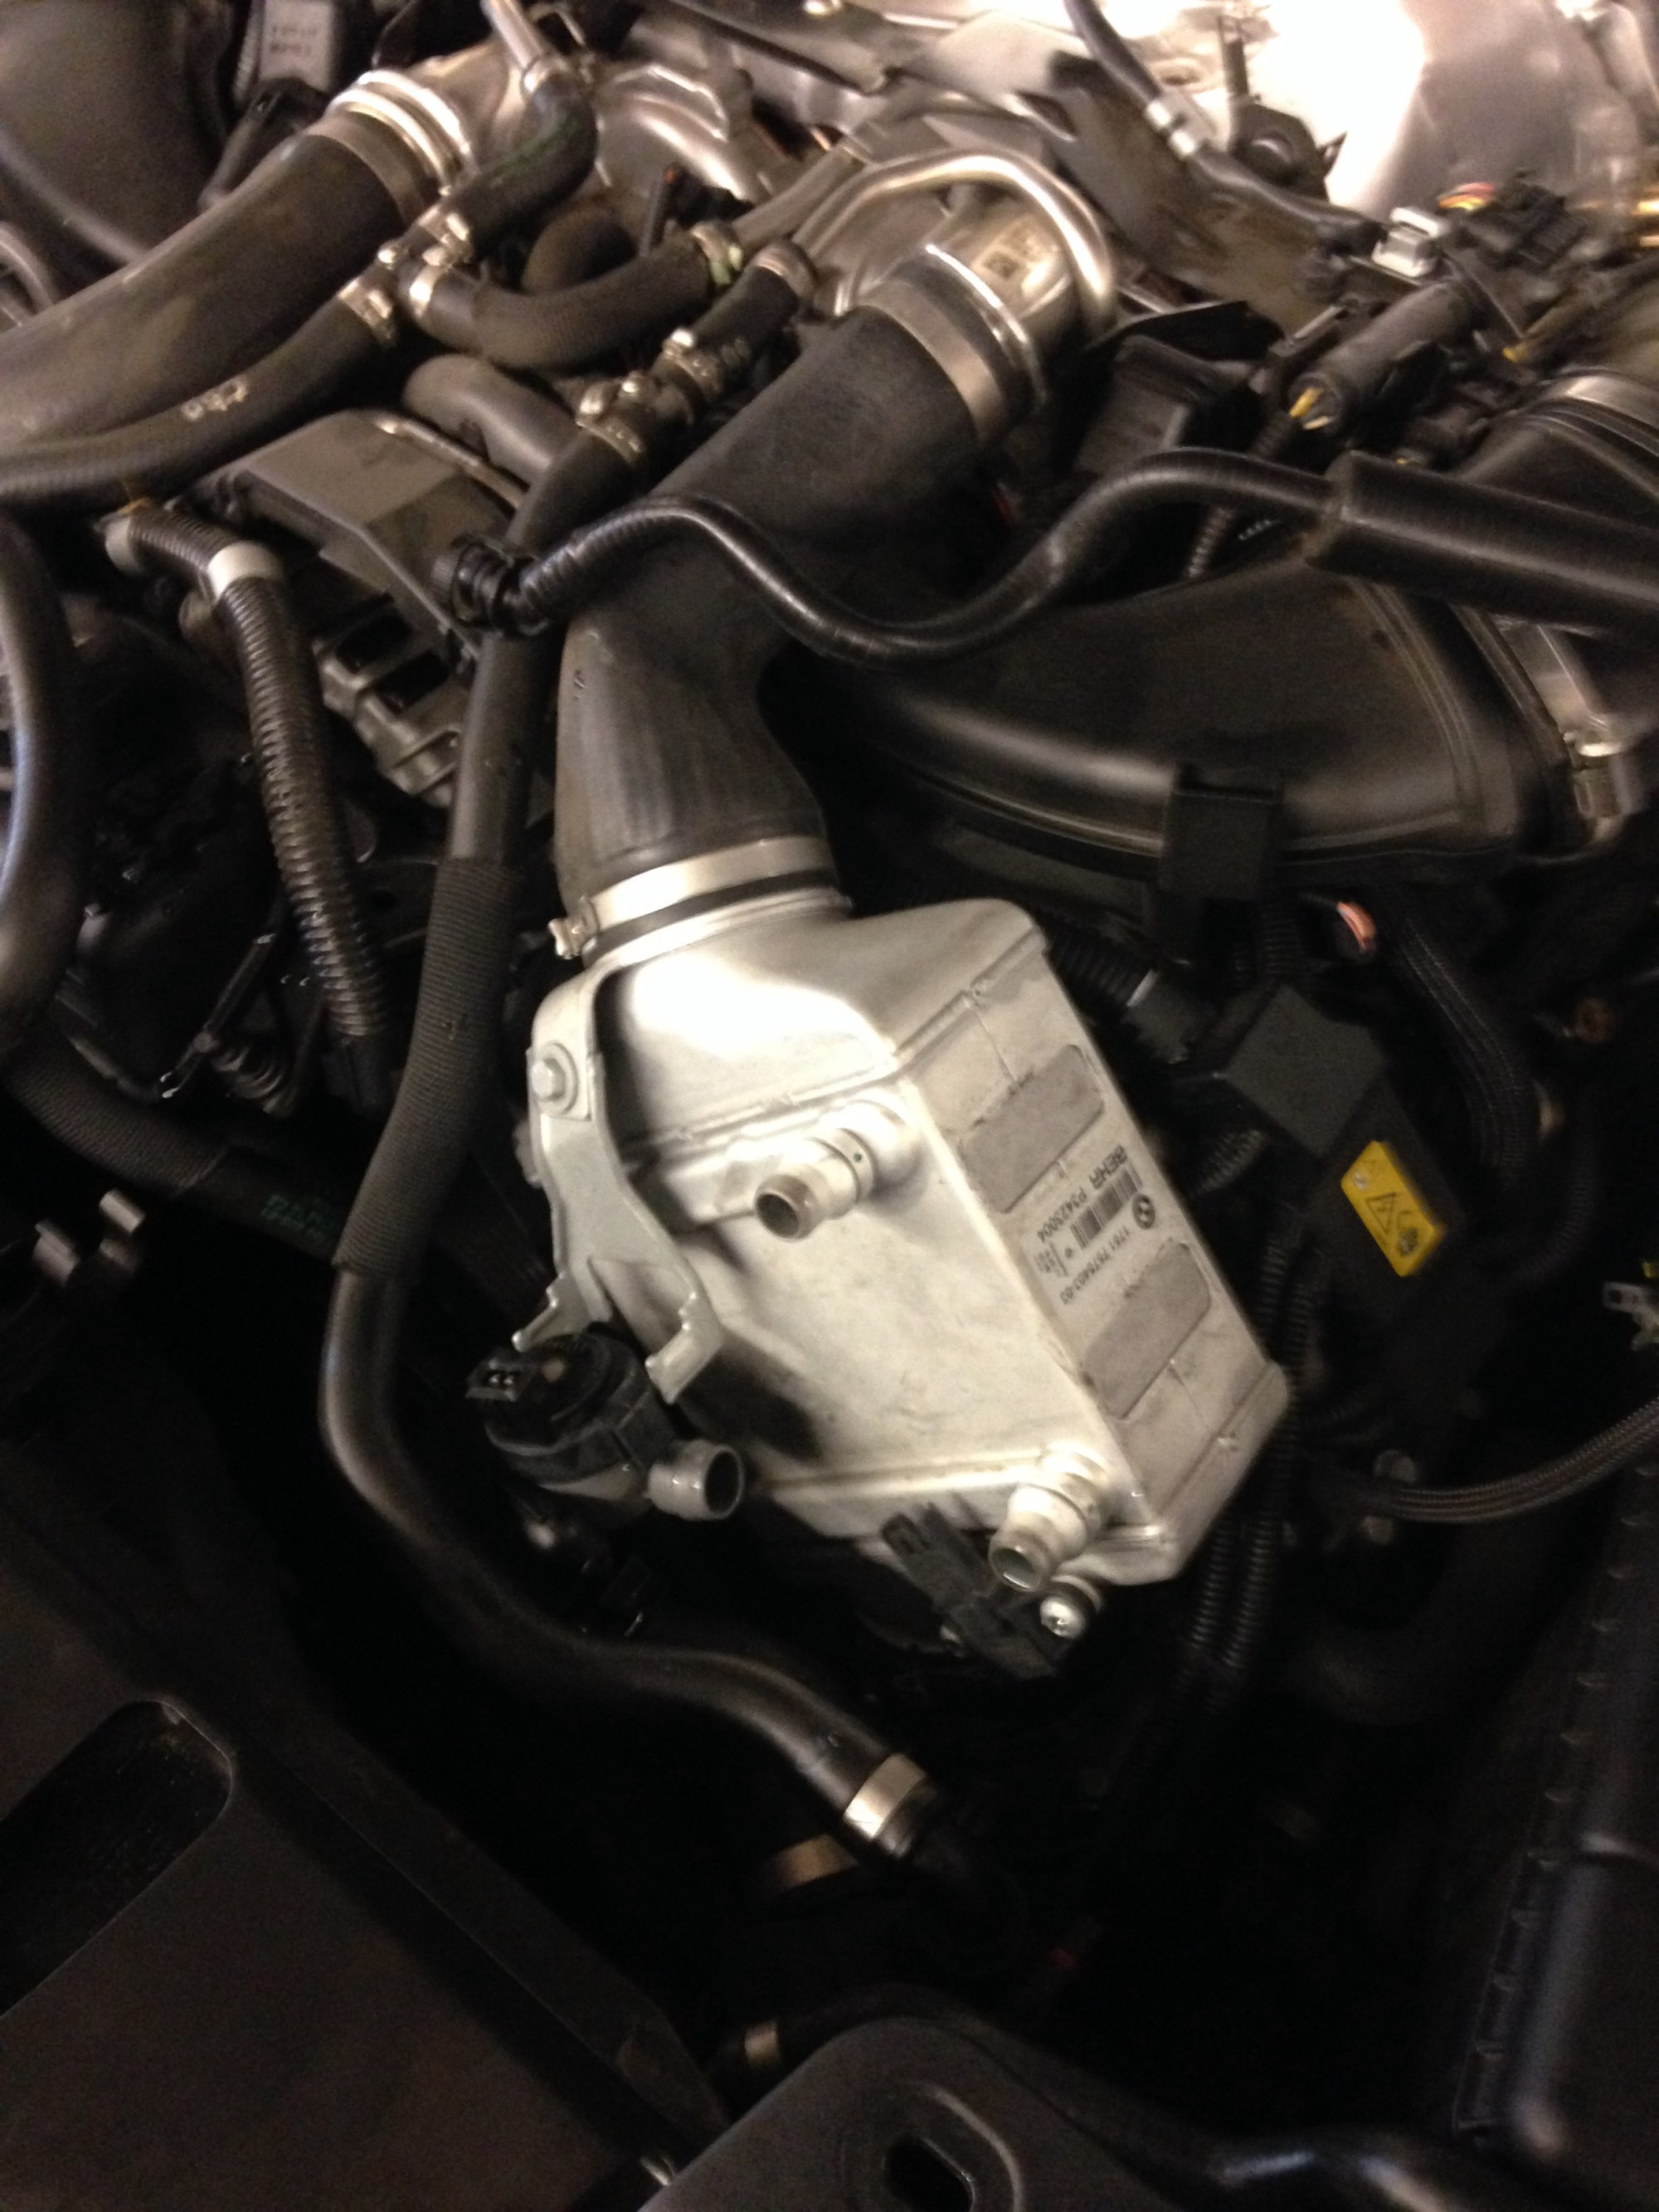 hight resolution of this n63 came in with check engine light on the fault was bank 2 intake vanos during cold start so the vanos unit wasn t working properly during cold